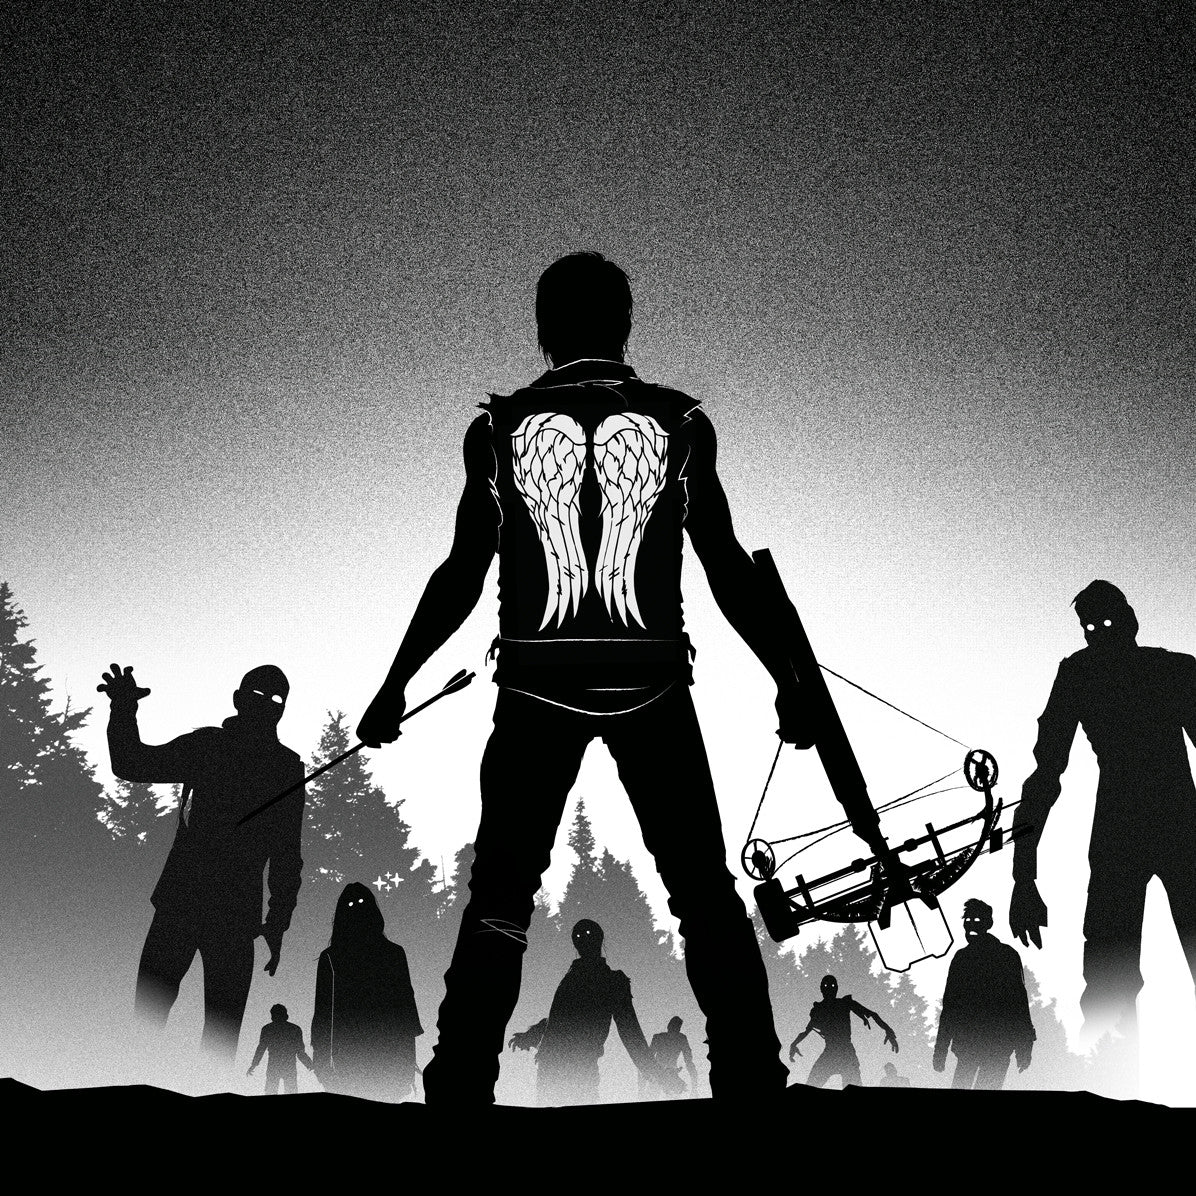 the walking dead design dedicated to Daryl Dixon by Suxinsu